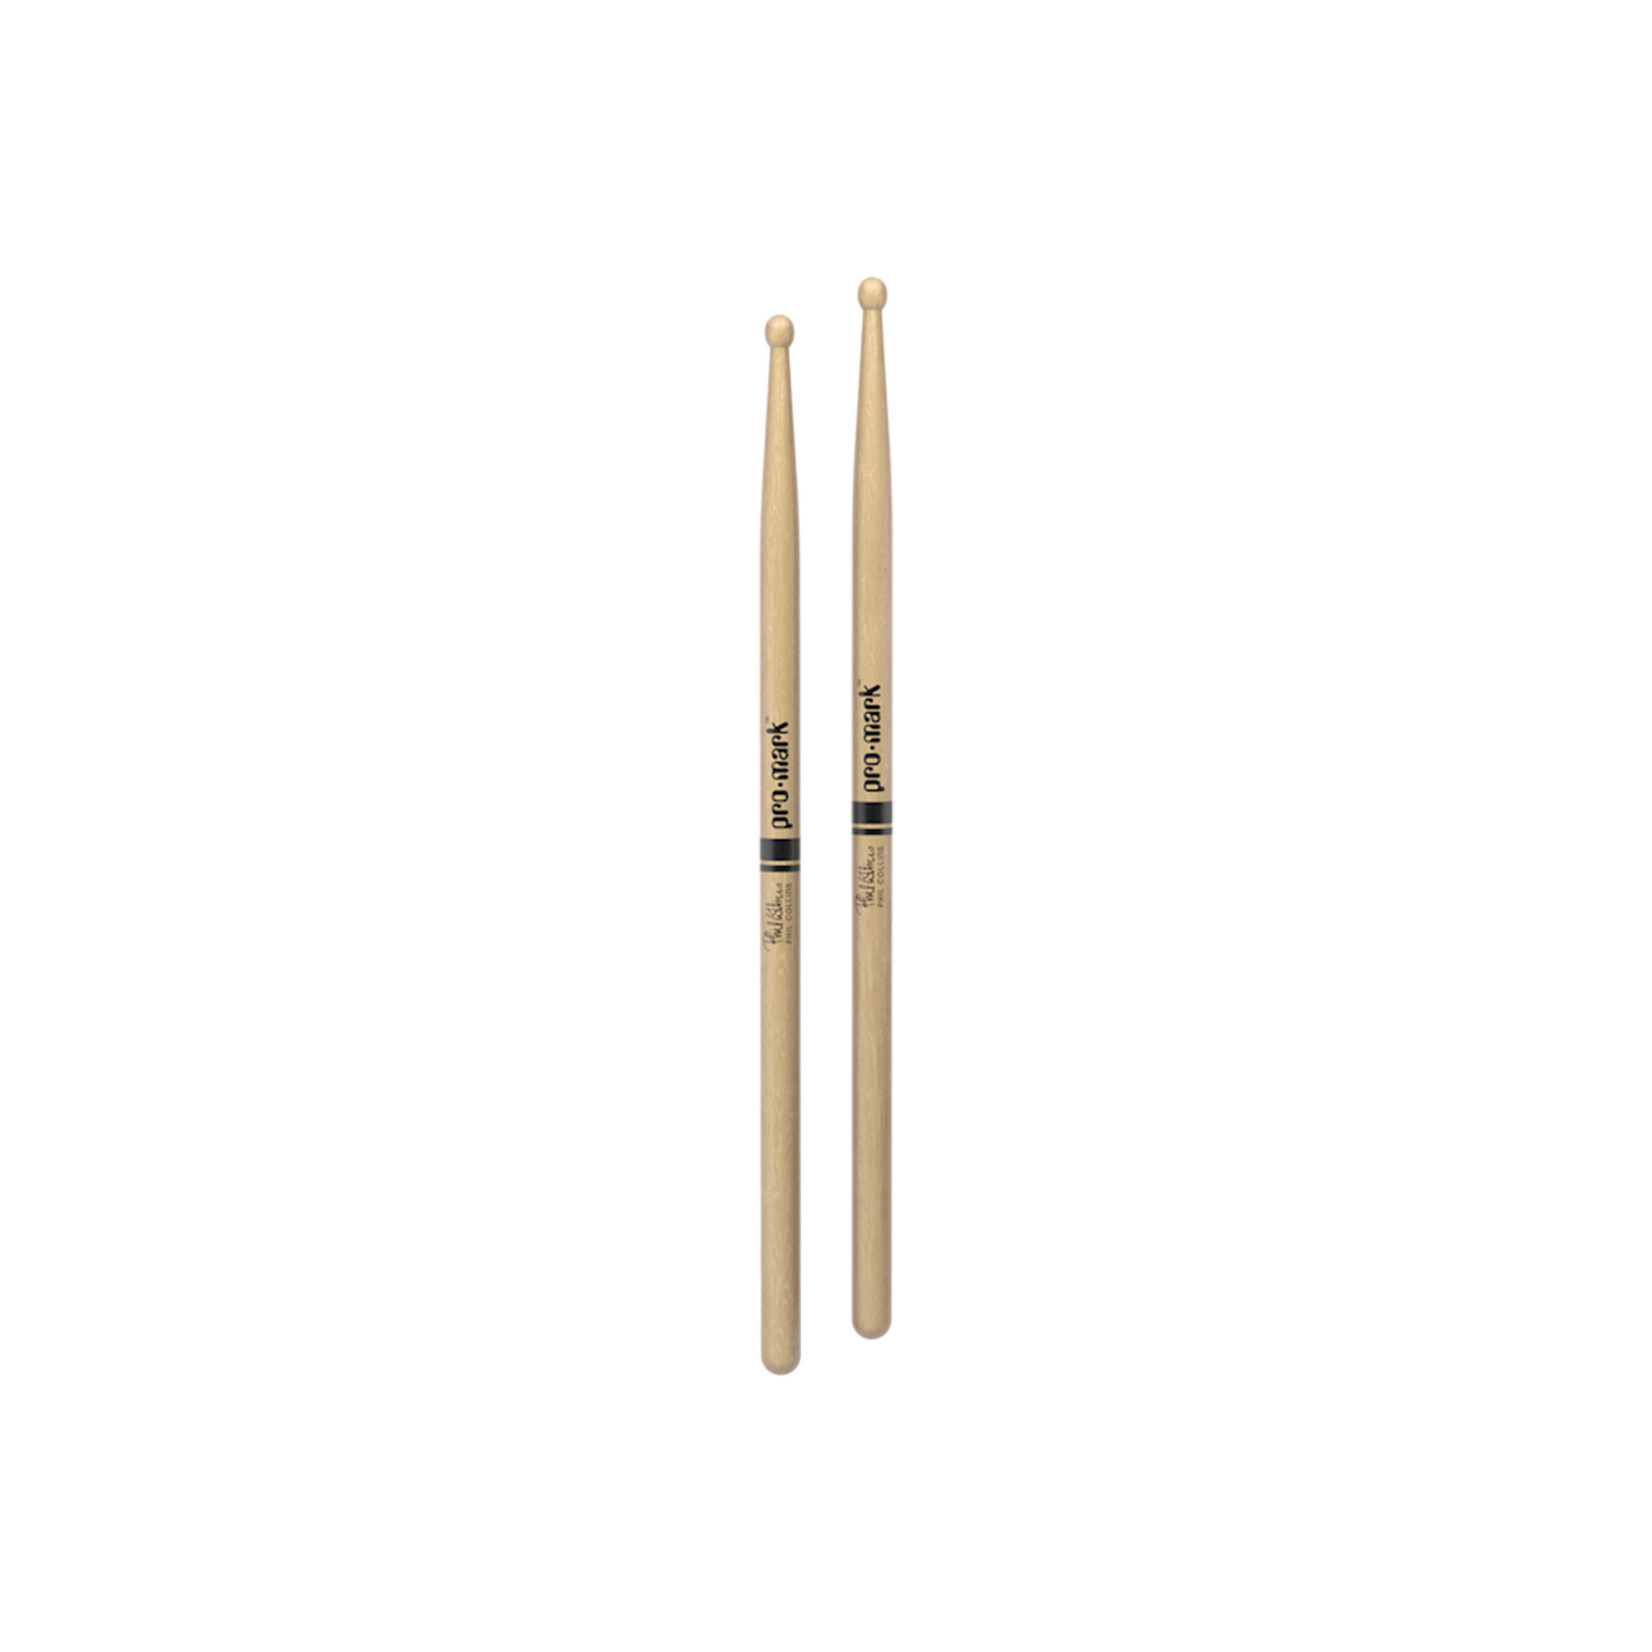 Promark ProMark Phil Collins Hickory Wood Tip Drumstick